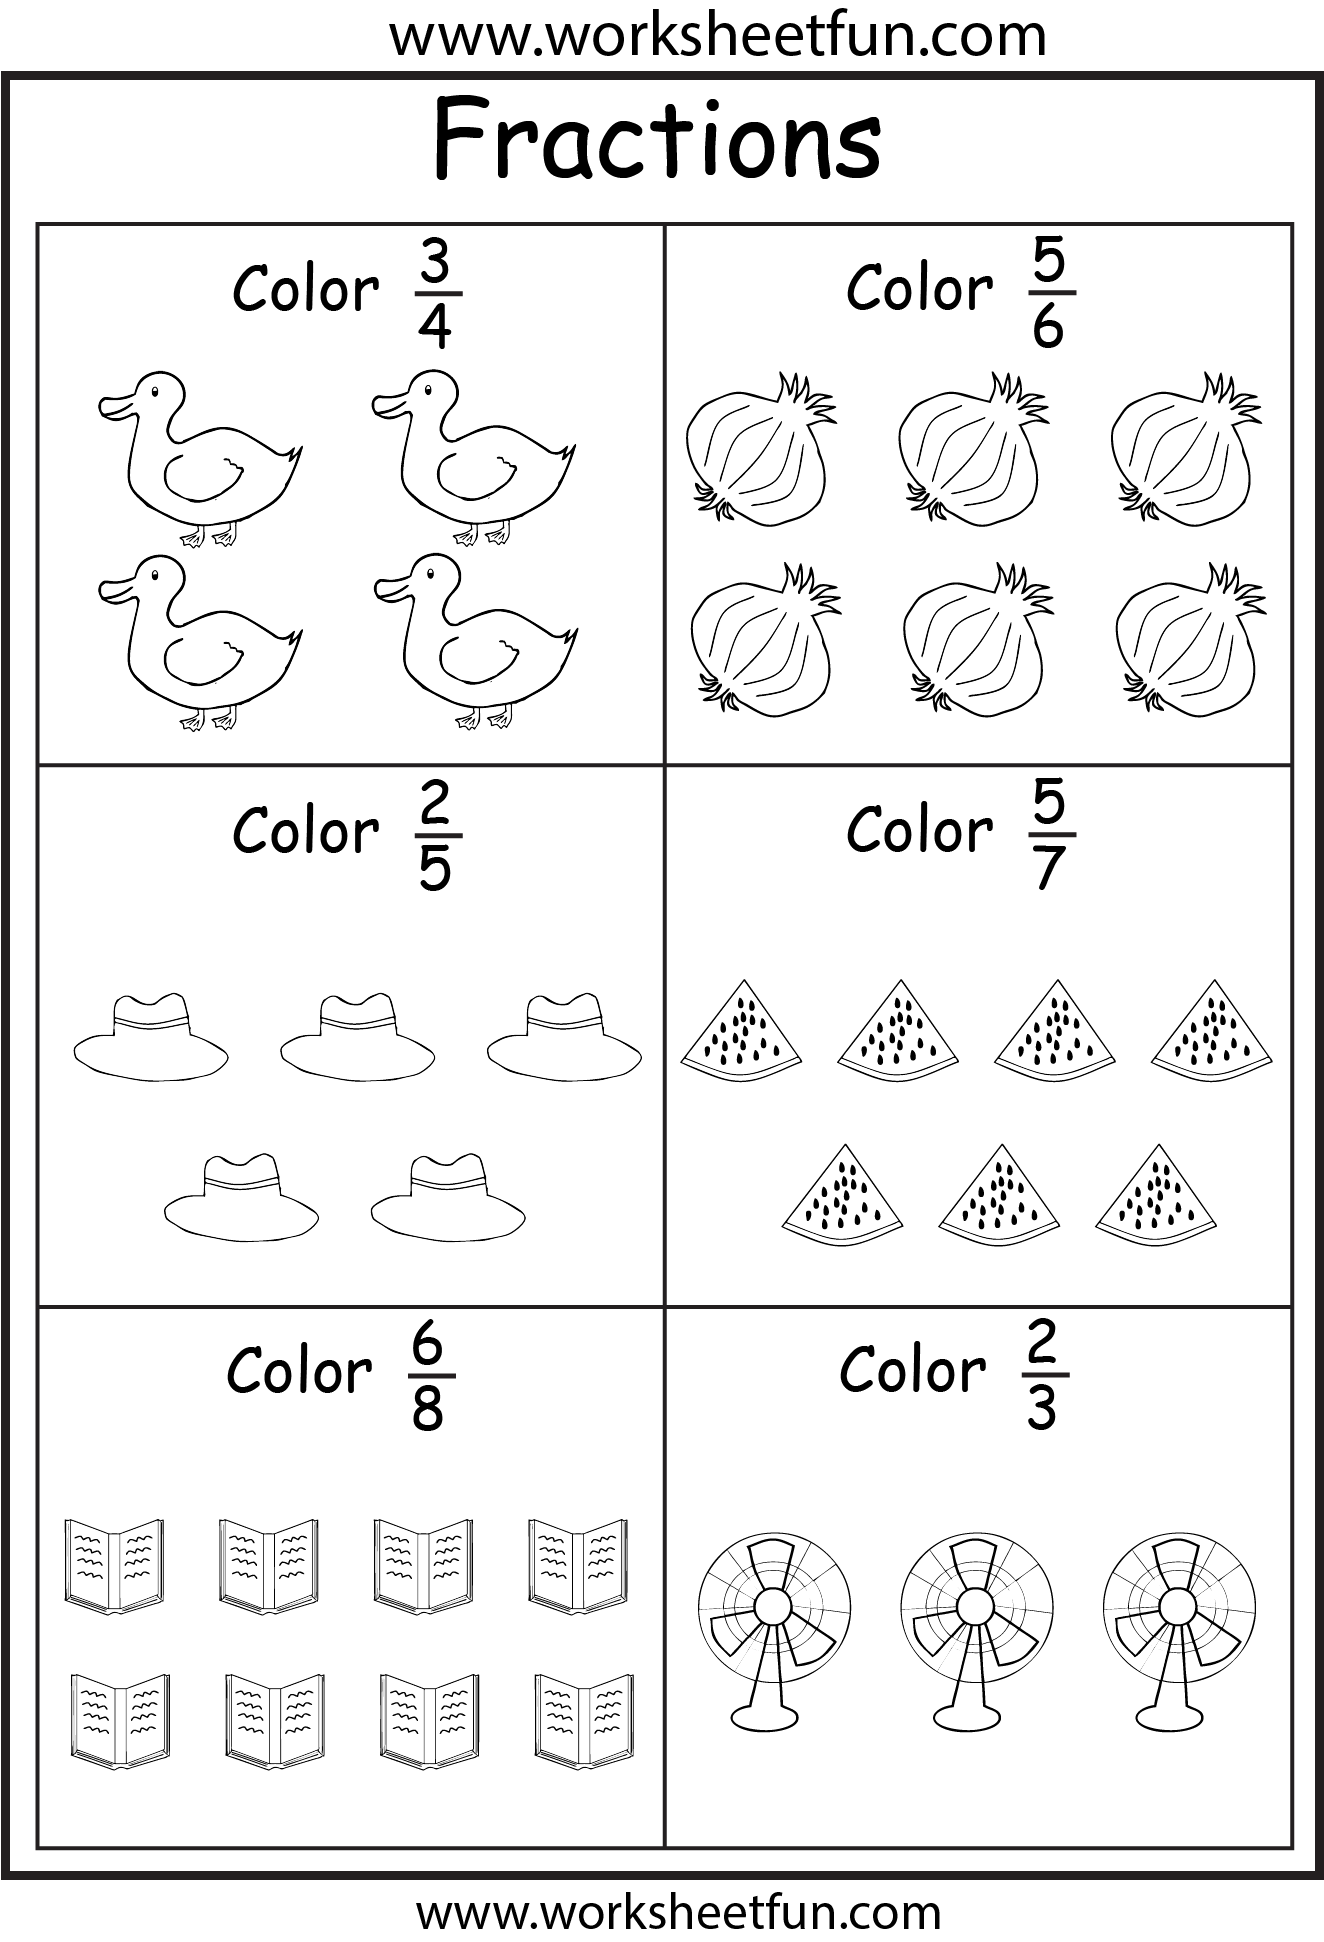 worksheet Grade 2 Fractions Worksheets Free fractions w objects school pinterest math and worksheets an assortment of free coloring 5 worksheets